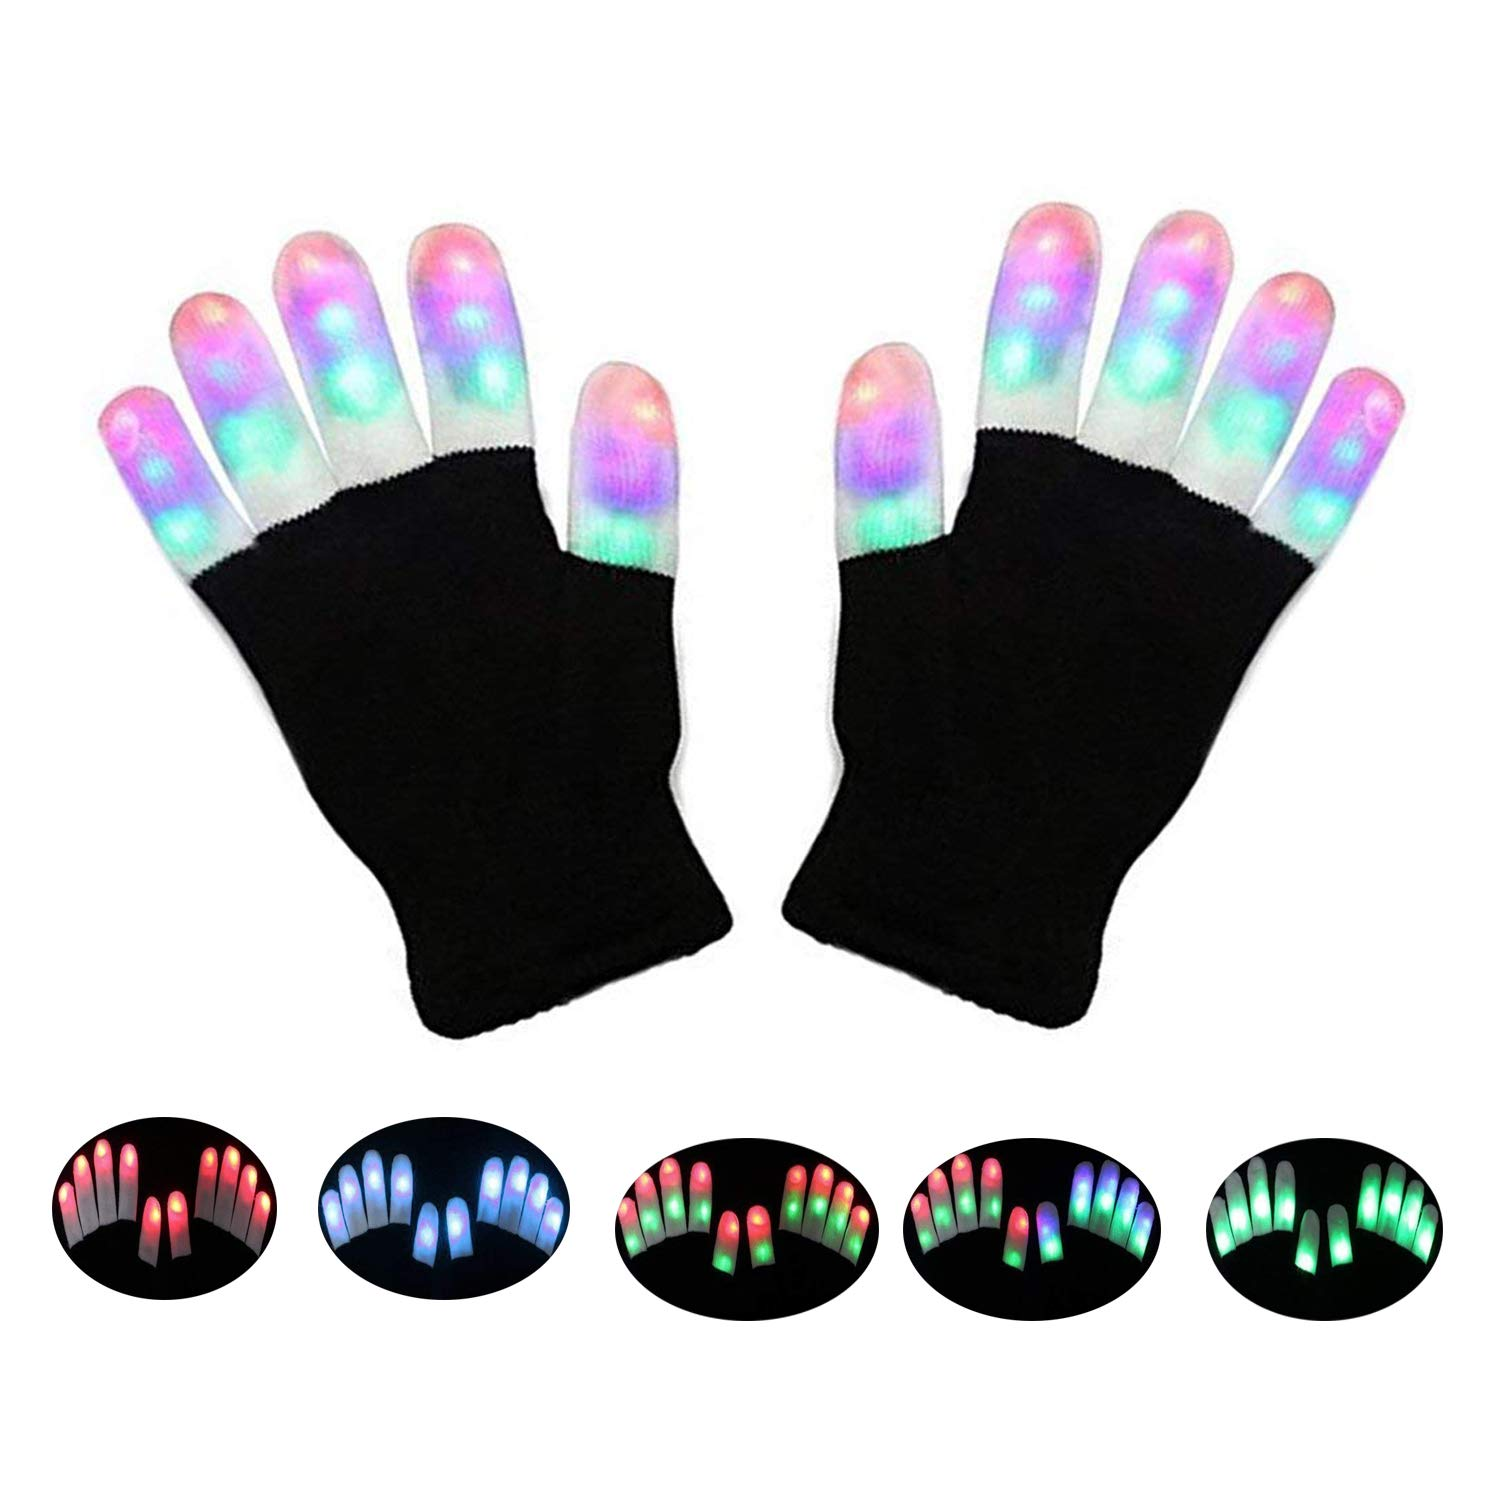 LSXD LED Gloves, Finger Lights 3 Colors 6 Modes Flashing LED Warm Gloves Colorful Flashing Rave Glow Gloves Kids Toys for Christmas Halloween Party Favors Light Up Toys Novelty